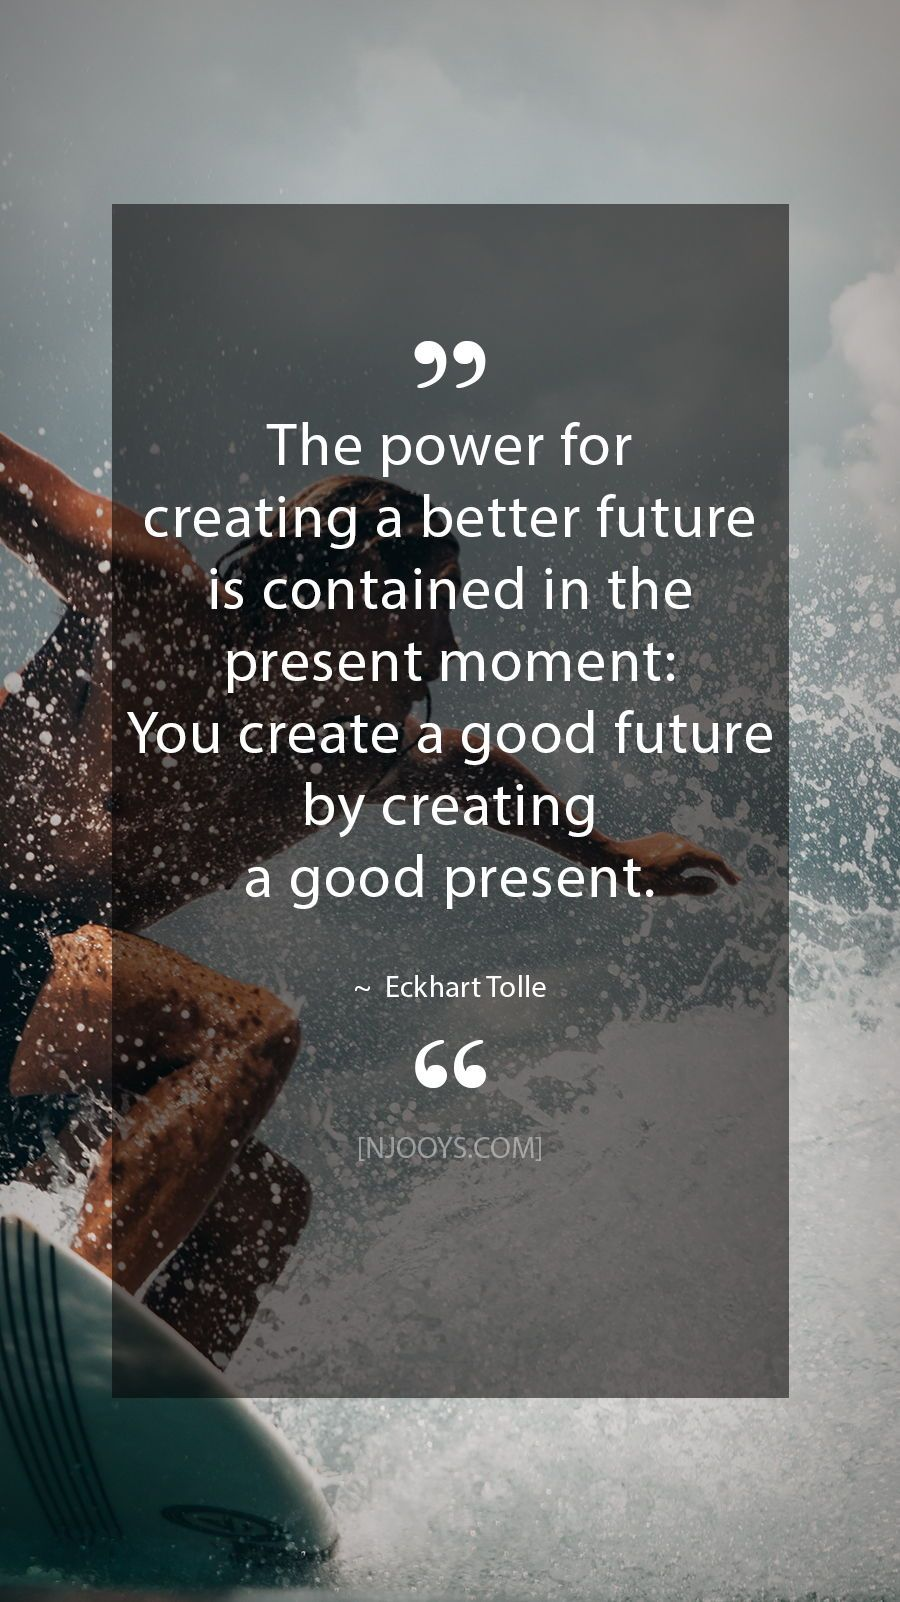 Eckhart Tolle Quotes The Power For Creating A Better Future